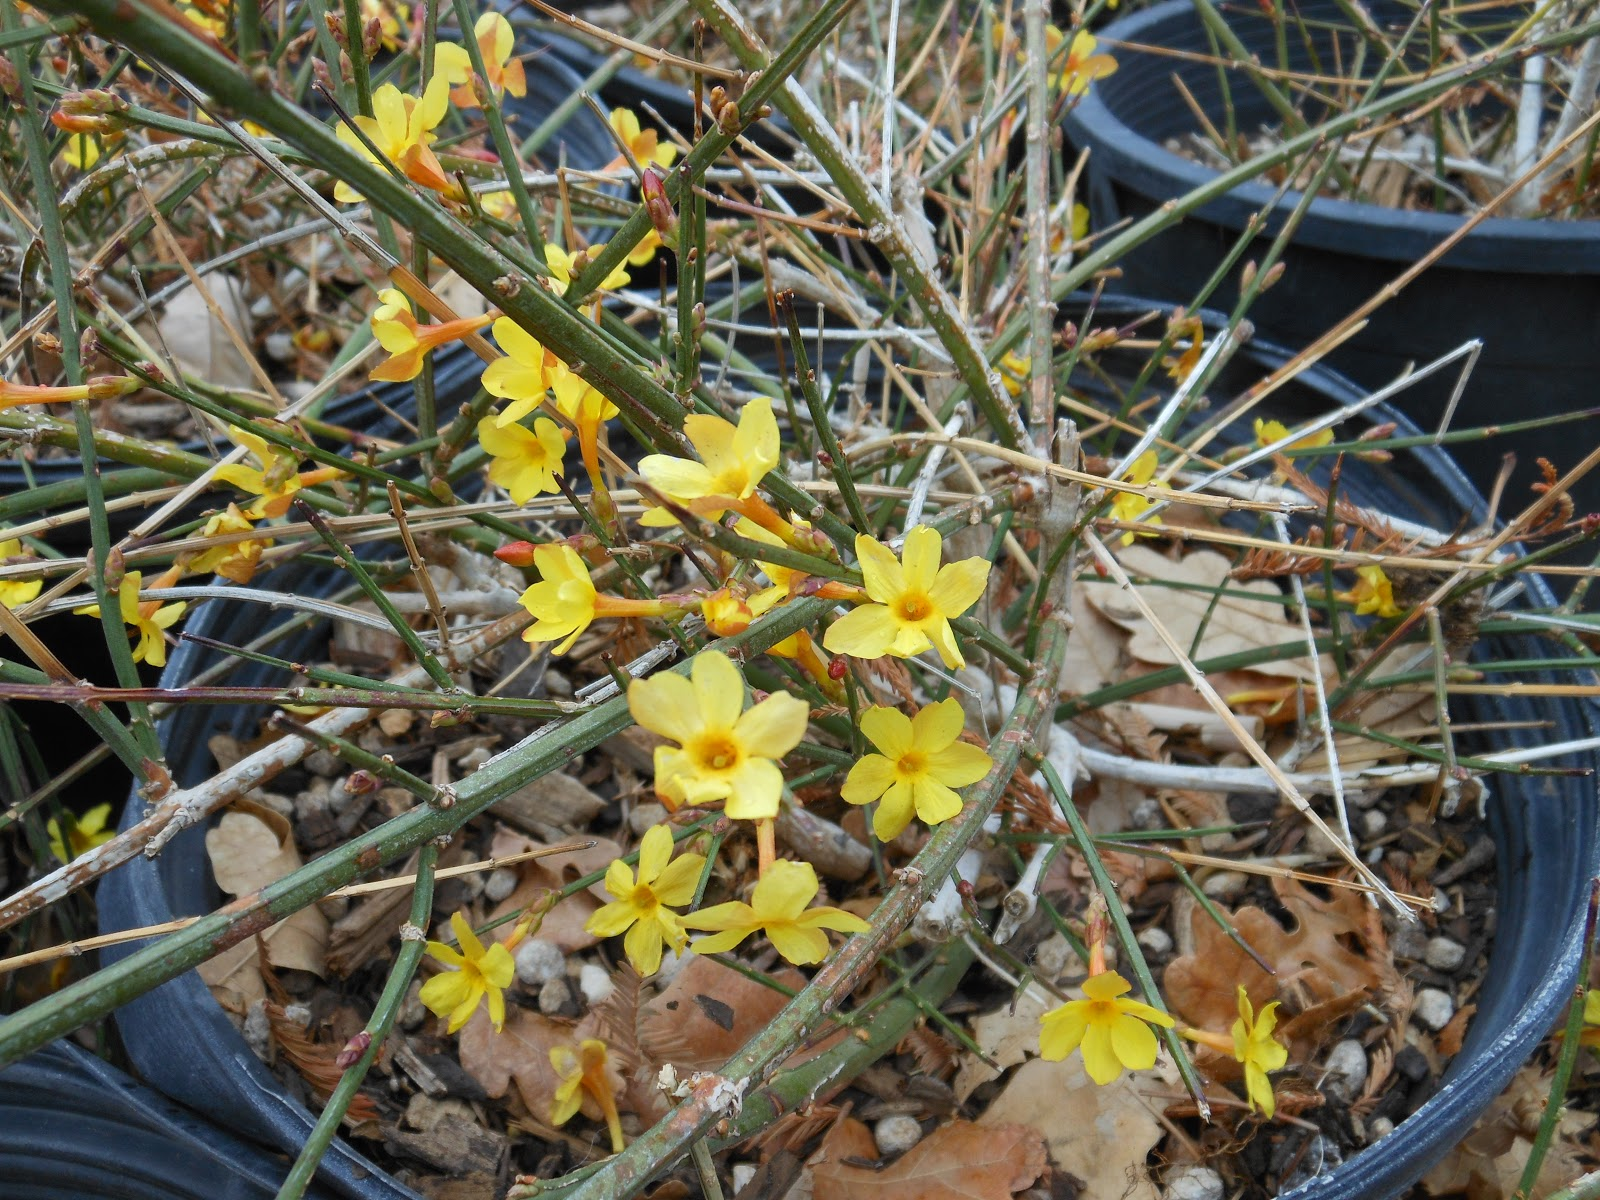 Trees that please nursery winter jasmine winter jasmine jasminium nudiflorum grows as a thin stemmed deciduous shrub that is native to china it can grow 8 10 tall and wider but is more izmirmasajfo Choice Image